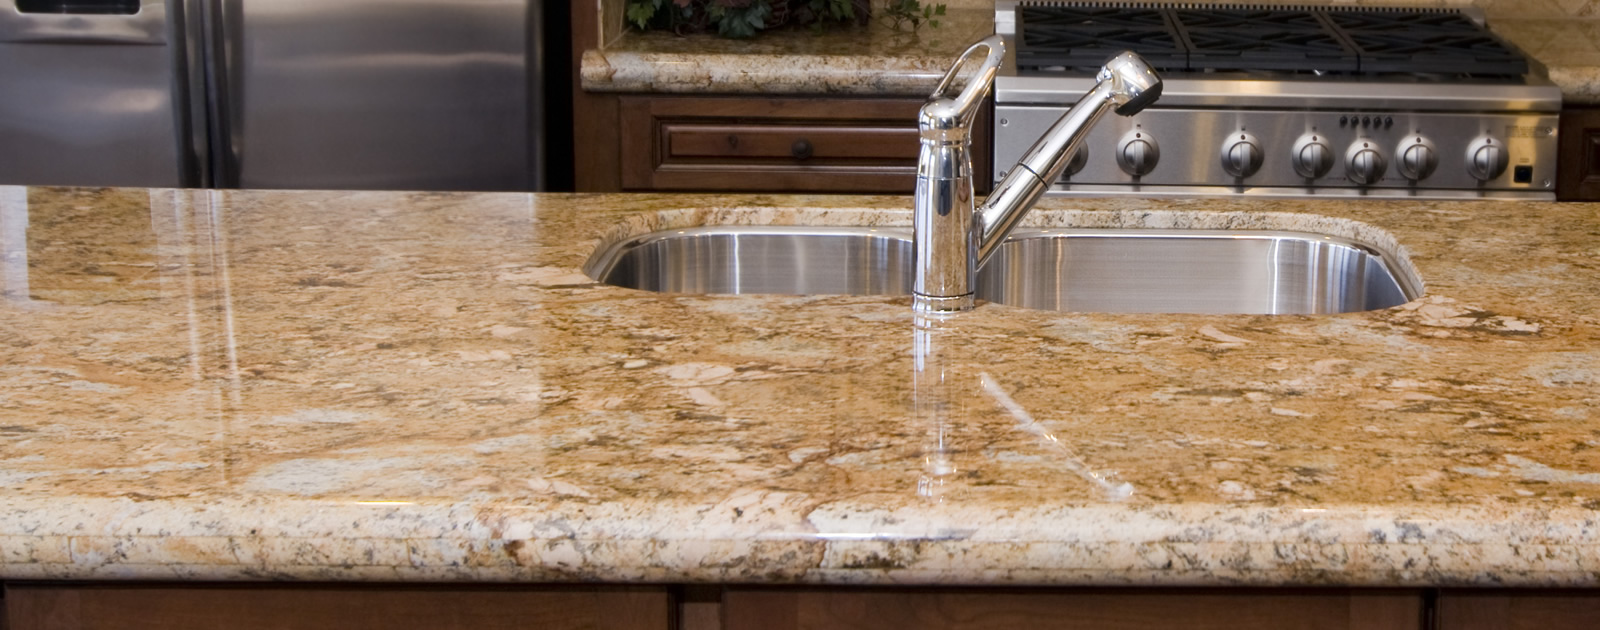 Natureu0027s Stone Granite. Quality Granite Countertops